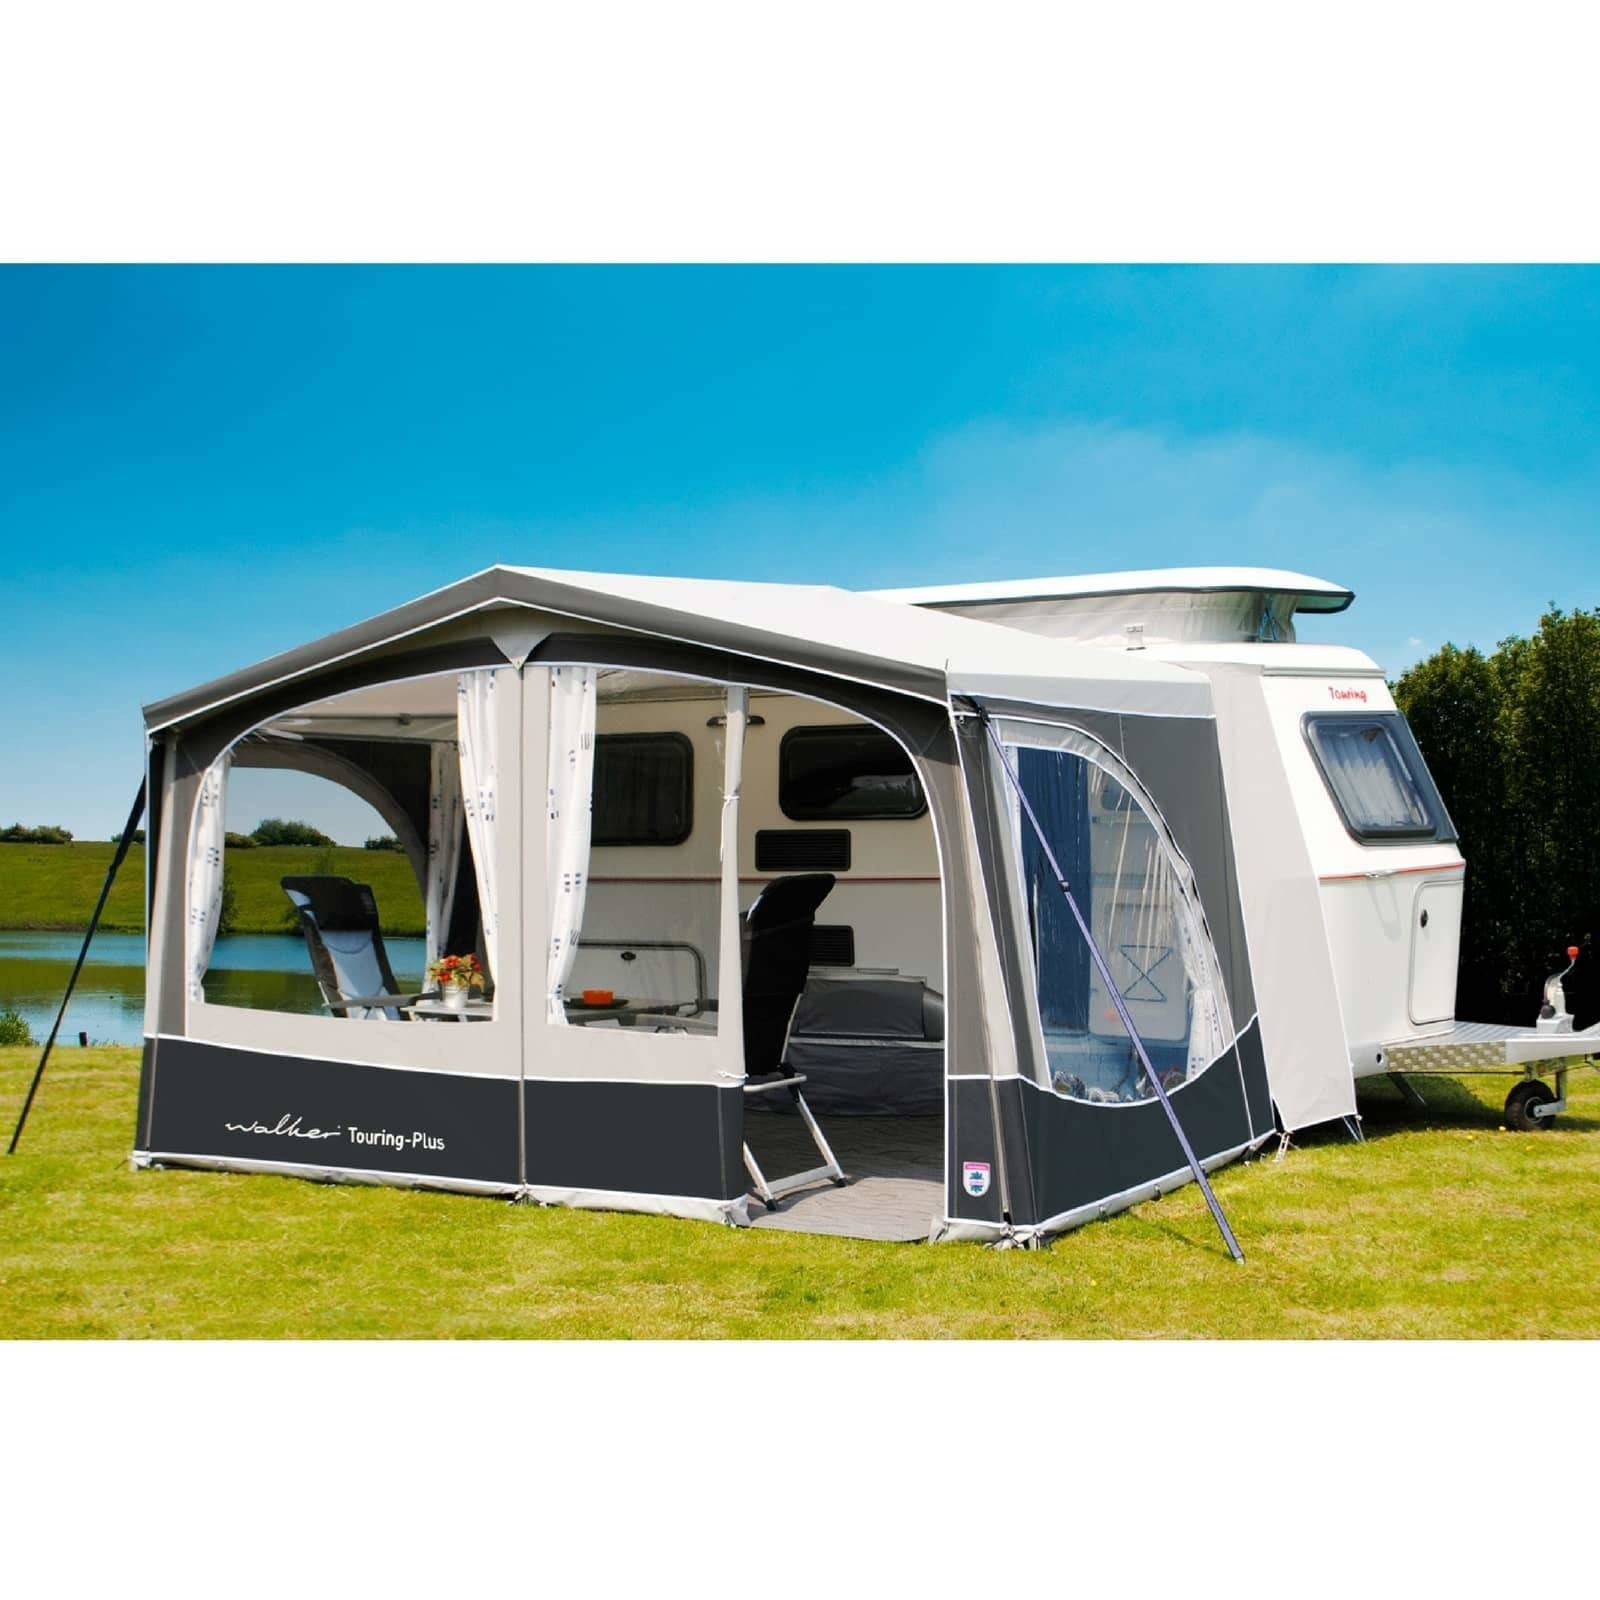 Walker Touring-Plus Full Caravan Awning for Eriba Touring ...